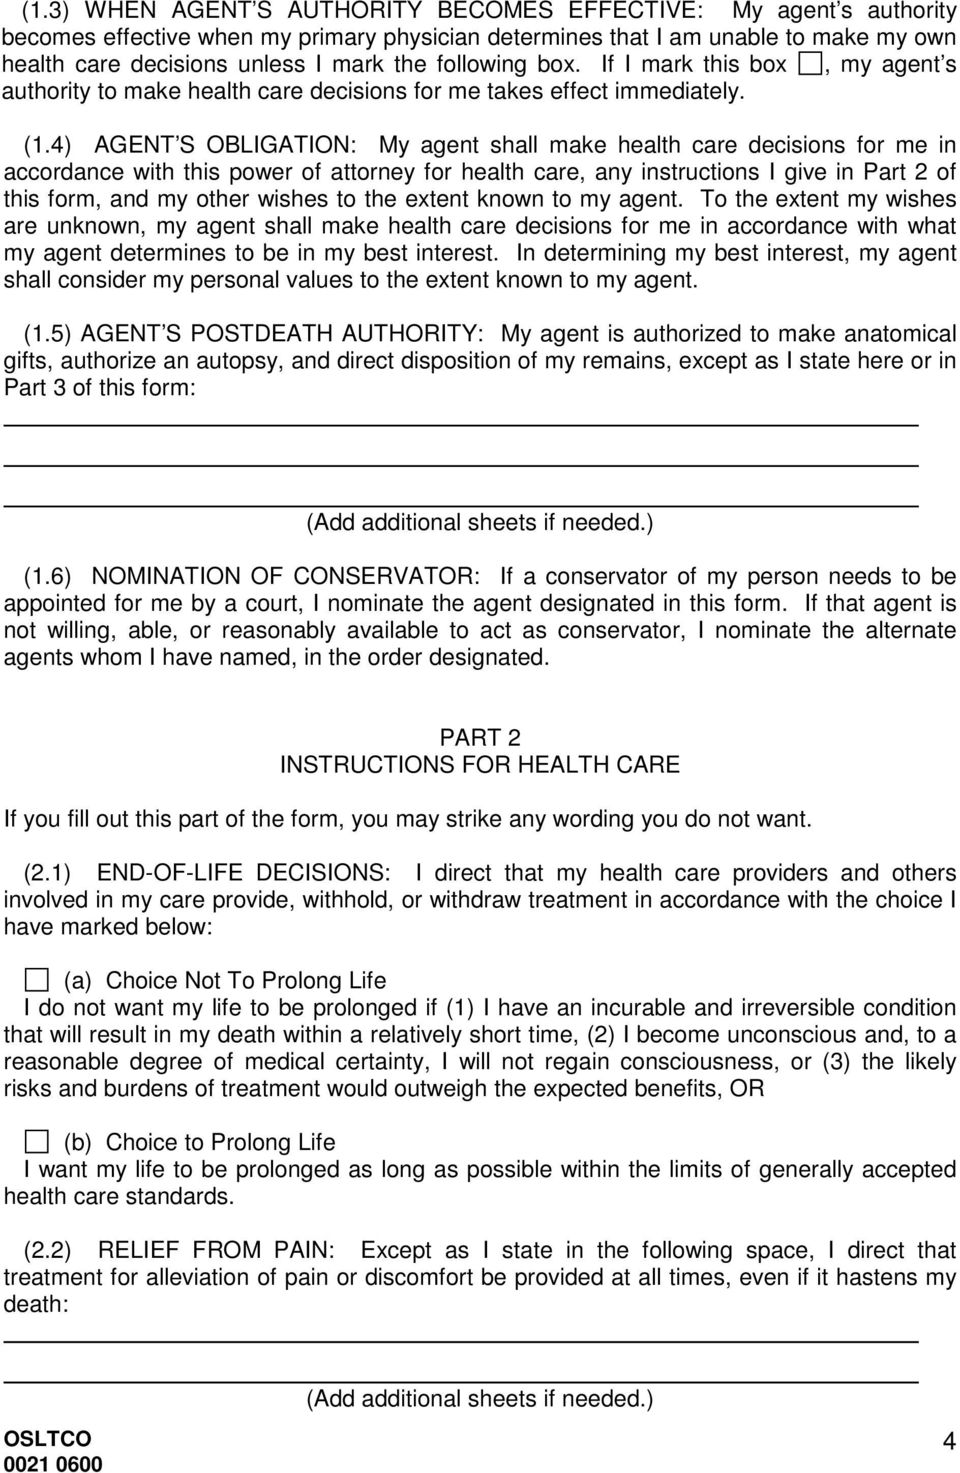 4) AGENT S OBLIGATION: My agent shall make health care decisions for me in accordance with this power of attorney for health care, any instructions I give in Part 2 of this form, and my other wishes